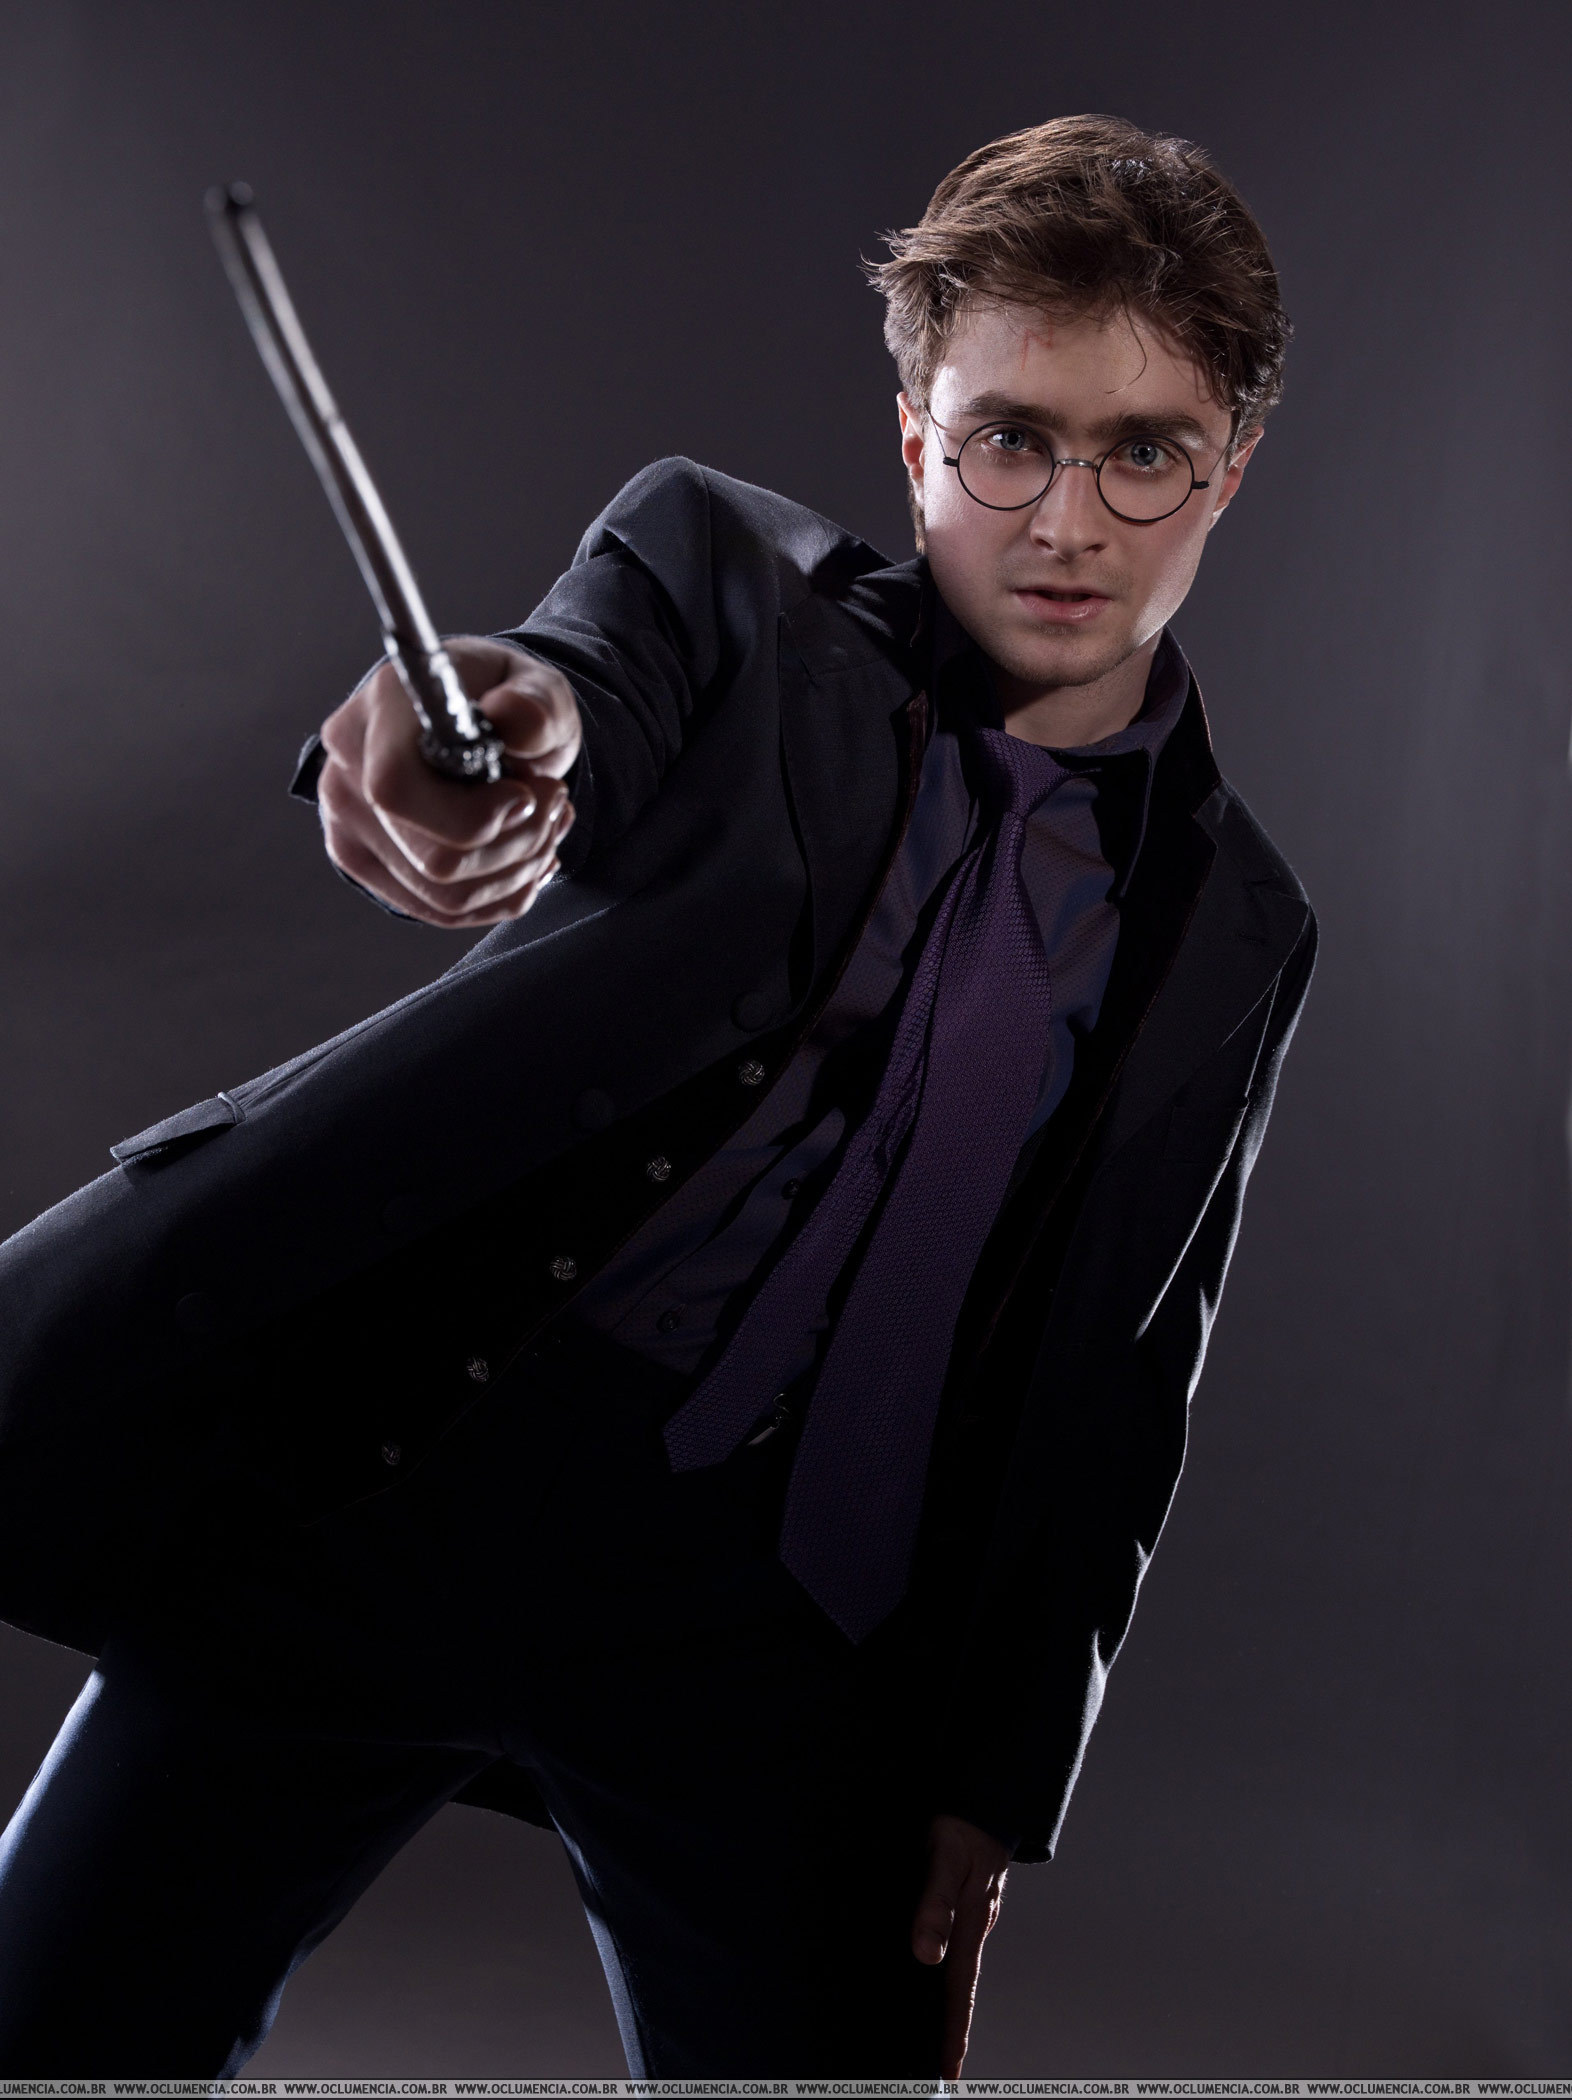 Harry James Potter ima...